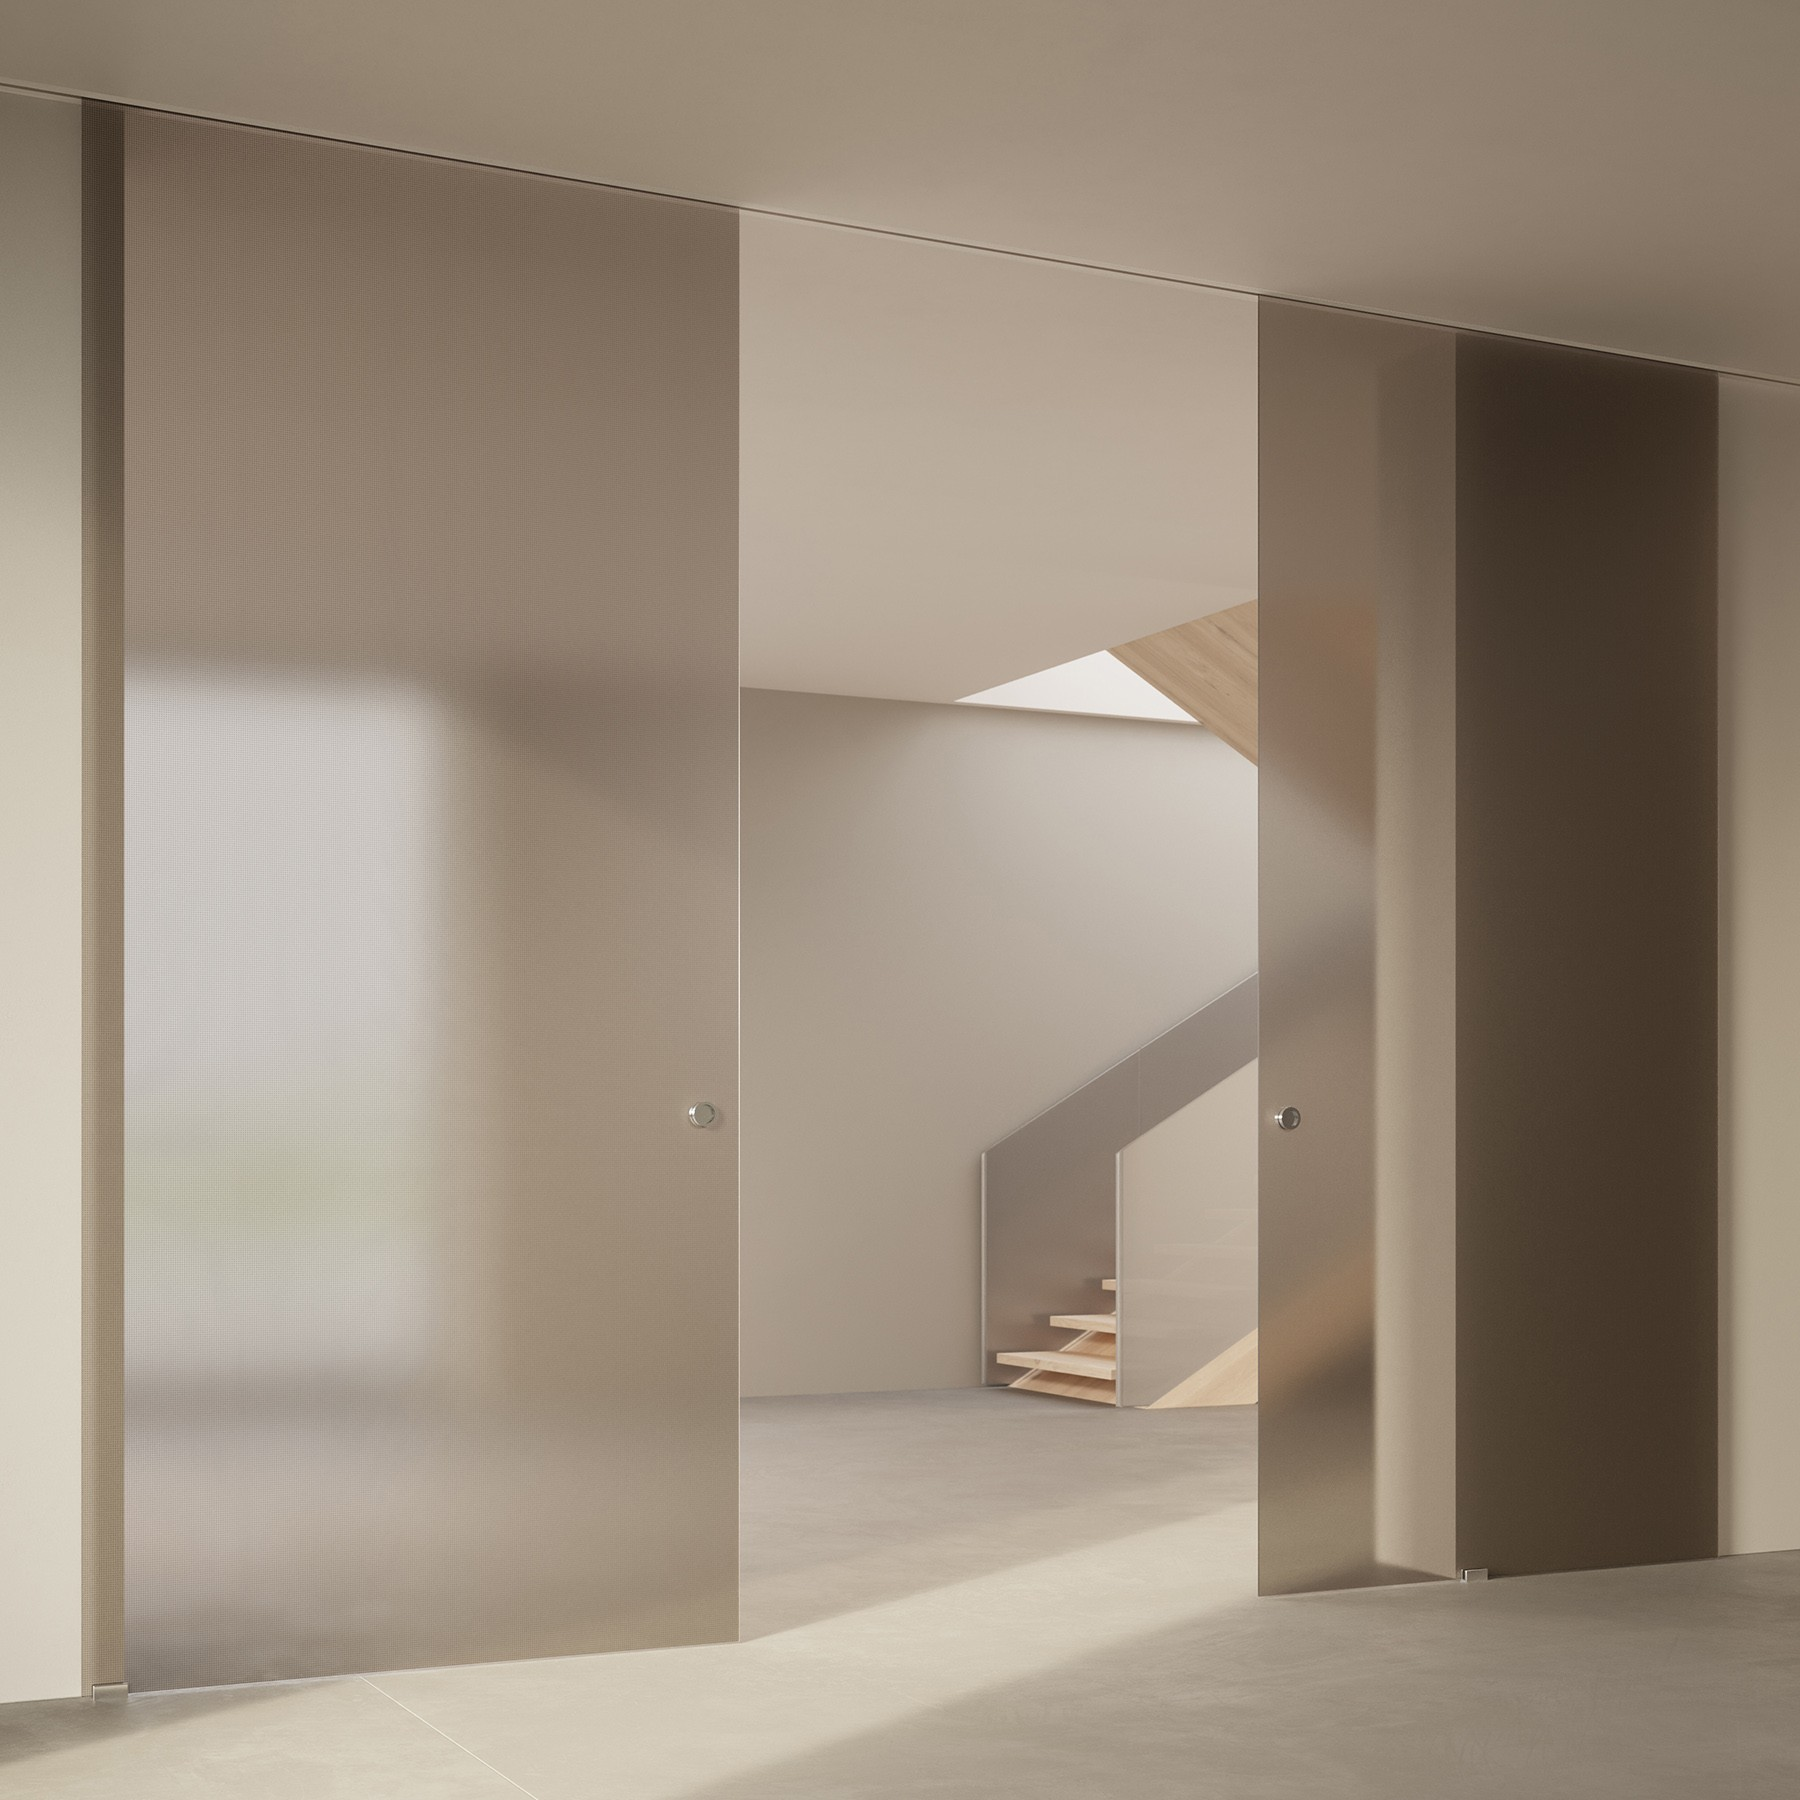 Scenario Visio Up with Point frosted bronzo glass